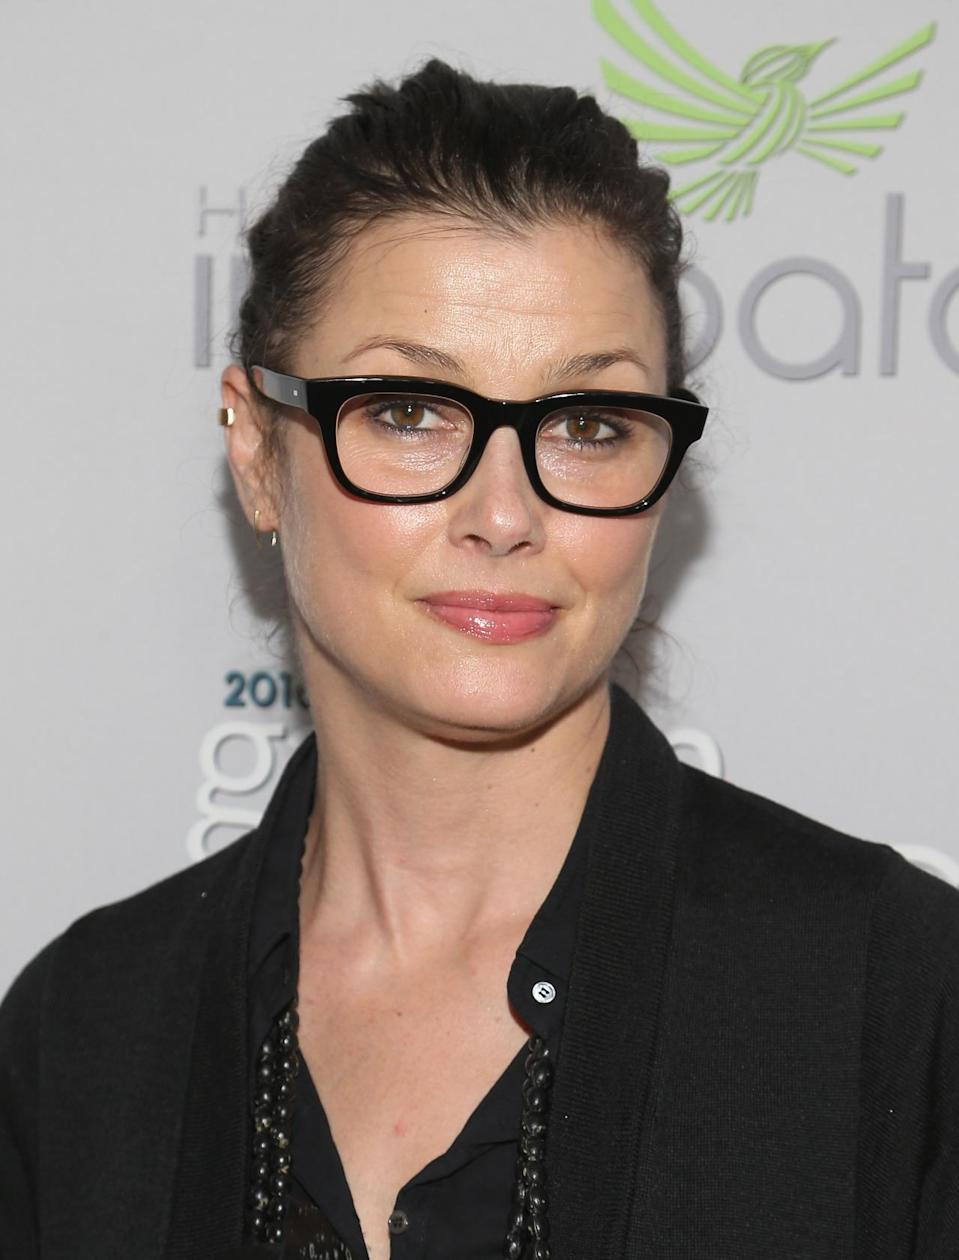 <p>Actress Bridget Moynahan attends the Garden Brunch prior to the 102nd White House Correspondents' Dinner, April 30. <i>(Photo: Paul Morigi/WireImage)</i></p>